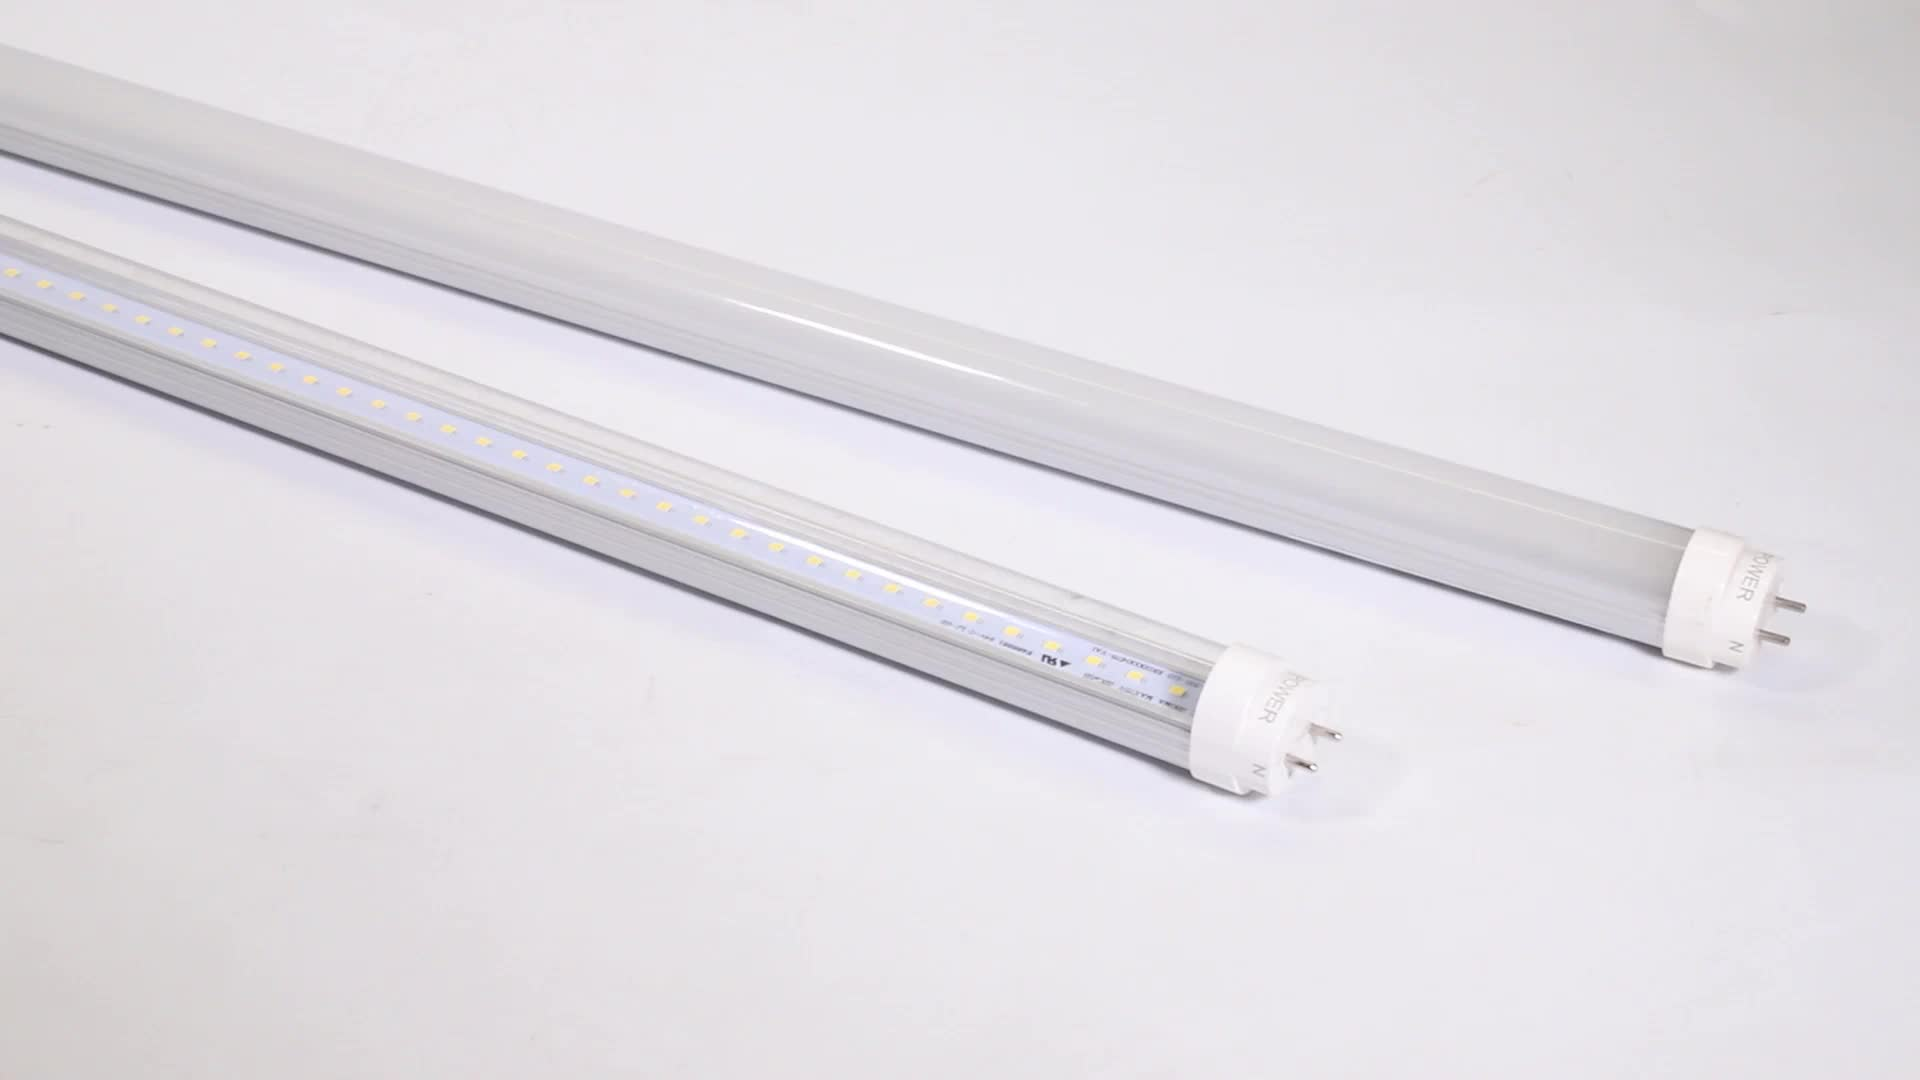 hot selling smd2835 led lighting 2.4meters 8ft 44watts FA8 single pin G13 pluorescent tube lamp T8 led tube light